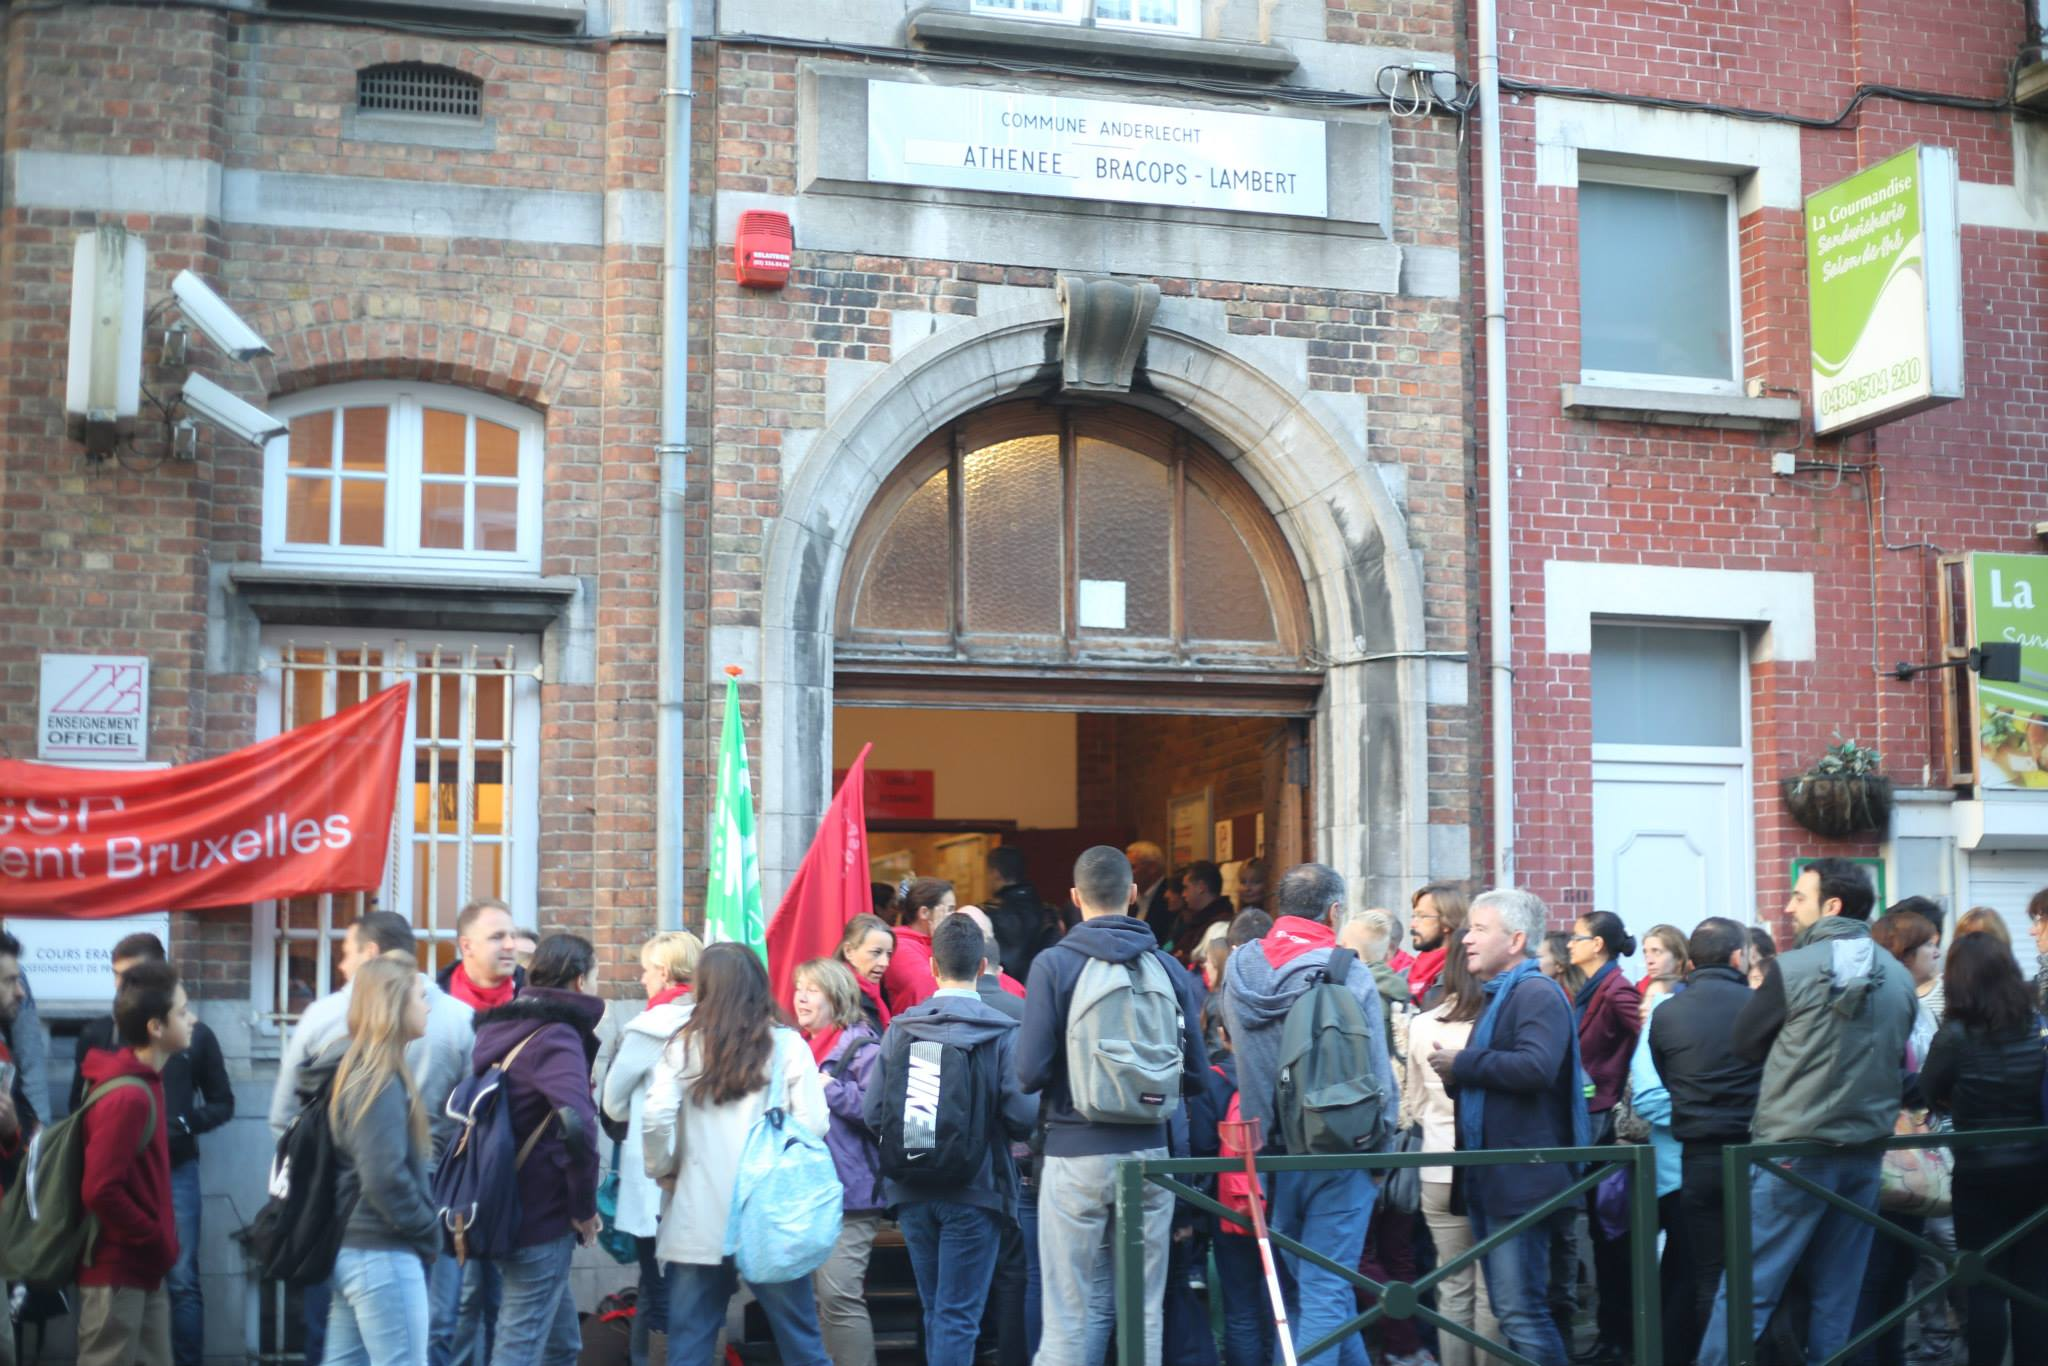 Tot 50 leerlingen in de klas. Staking in atheneum Bracops-Lambert in Anderlecht